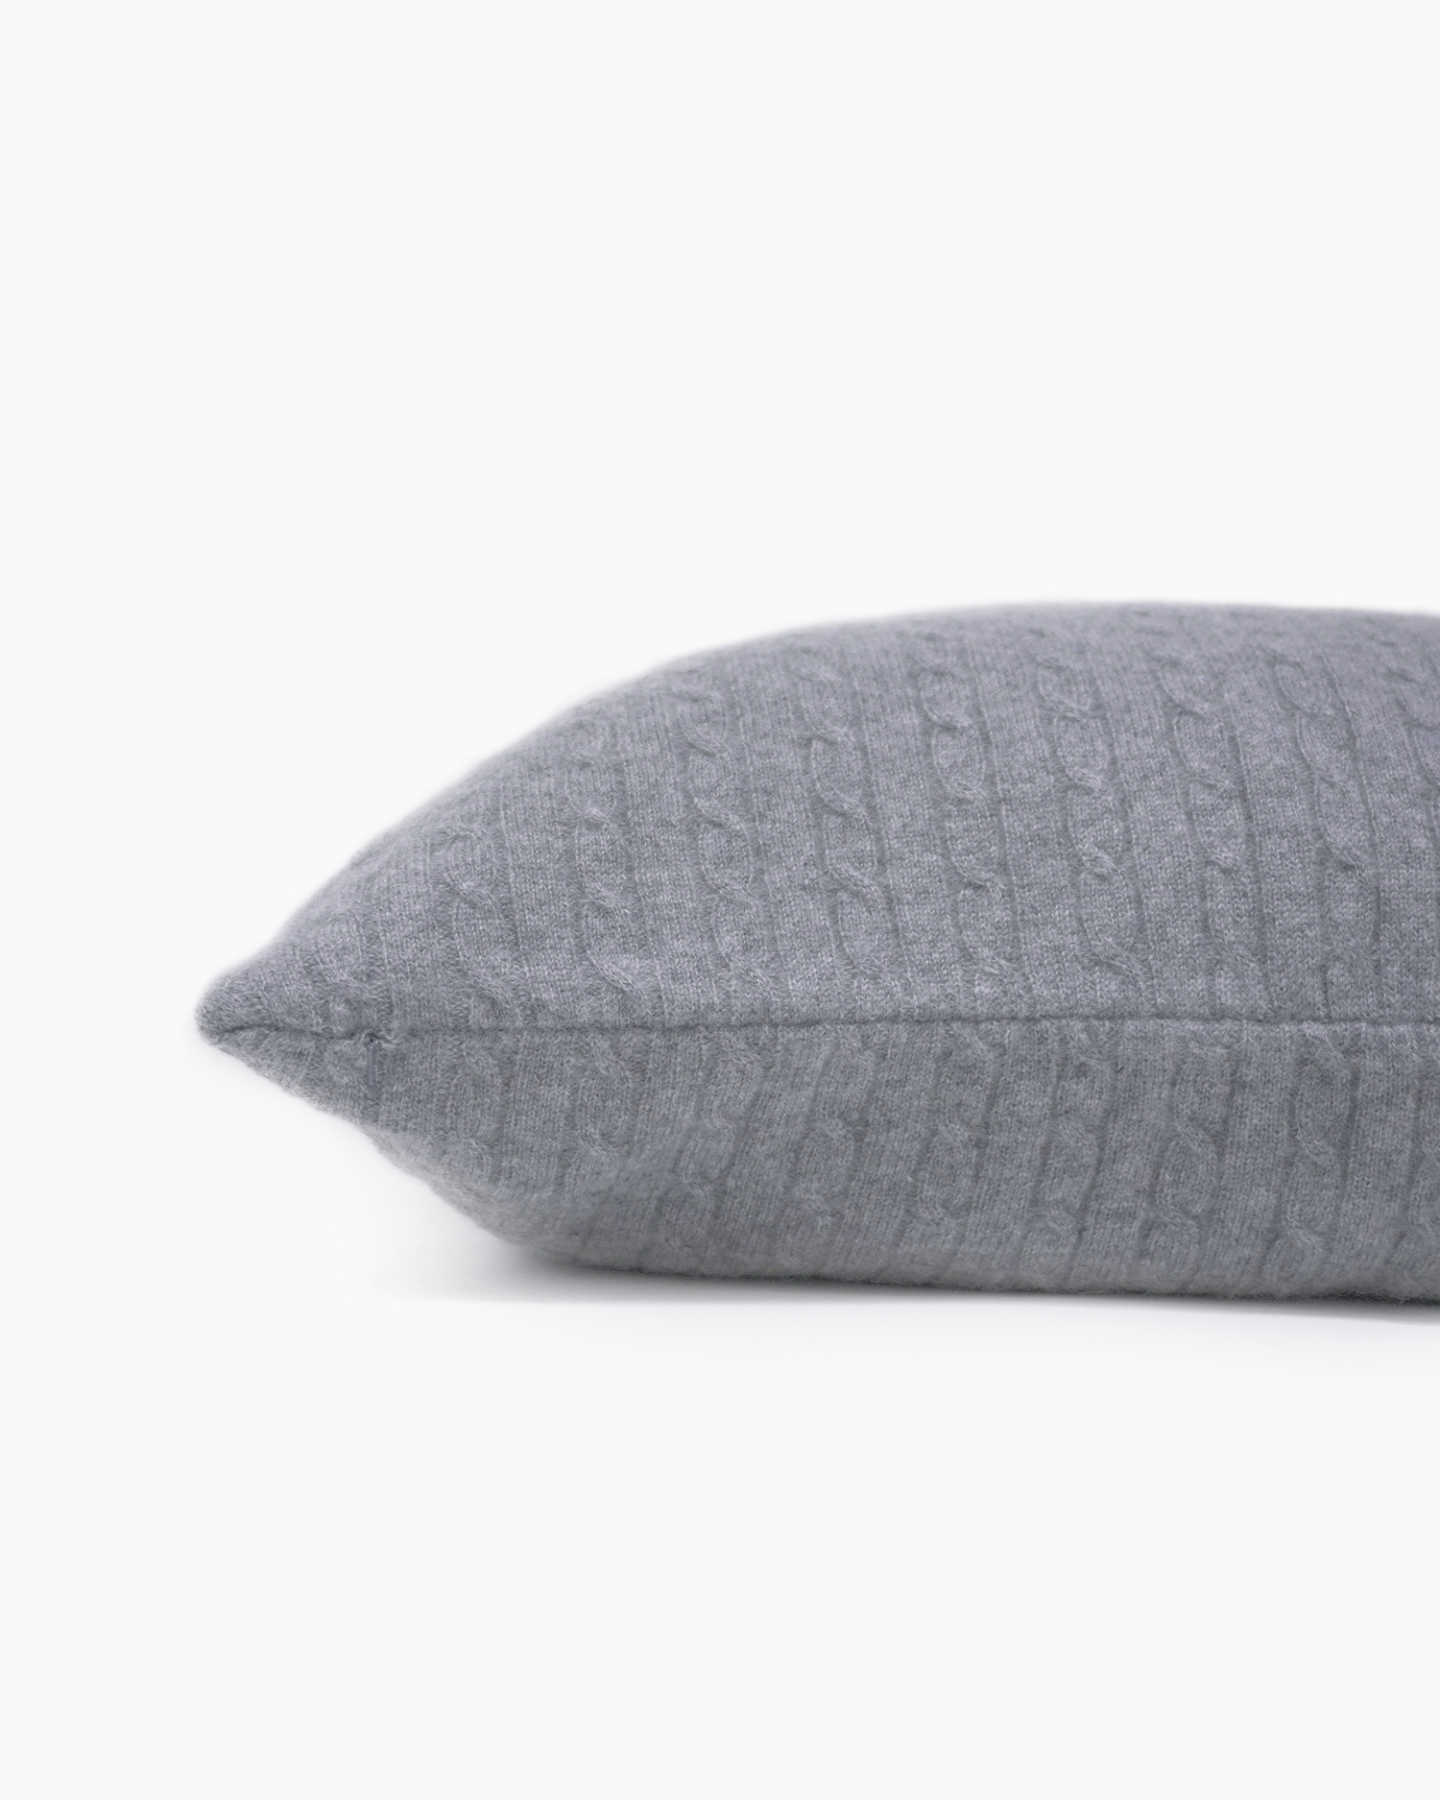 Cable Knit Cashmere Pillow Cover - Heather Grey - 2